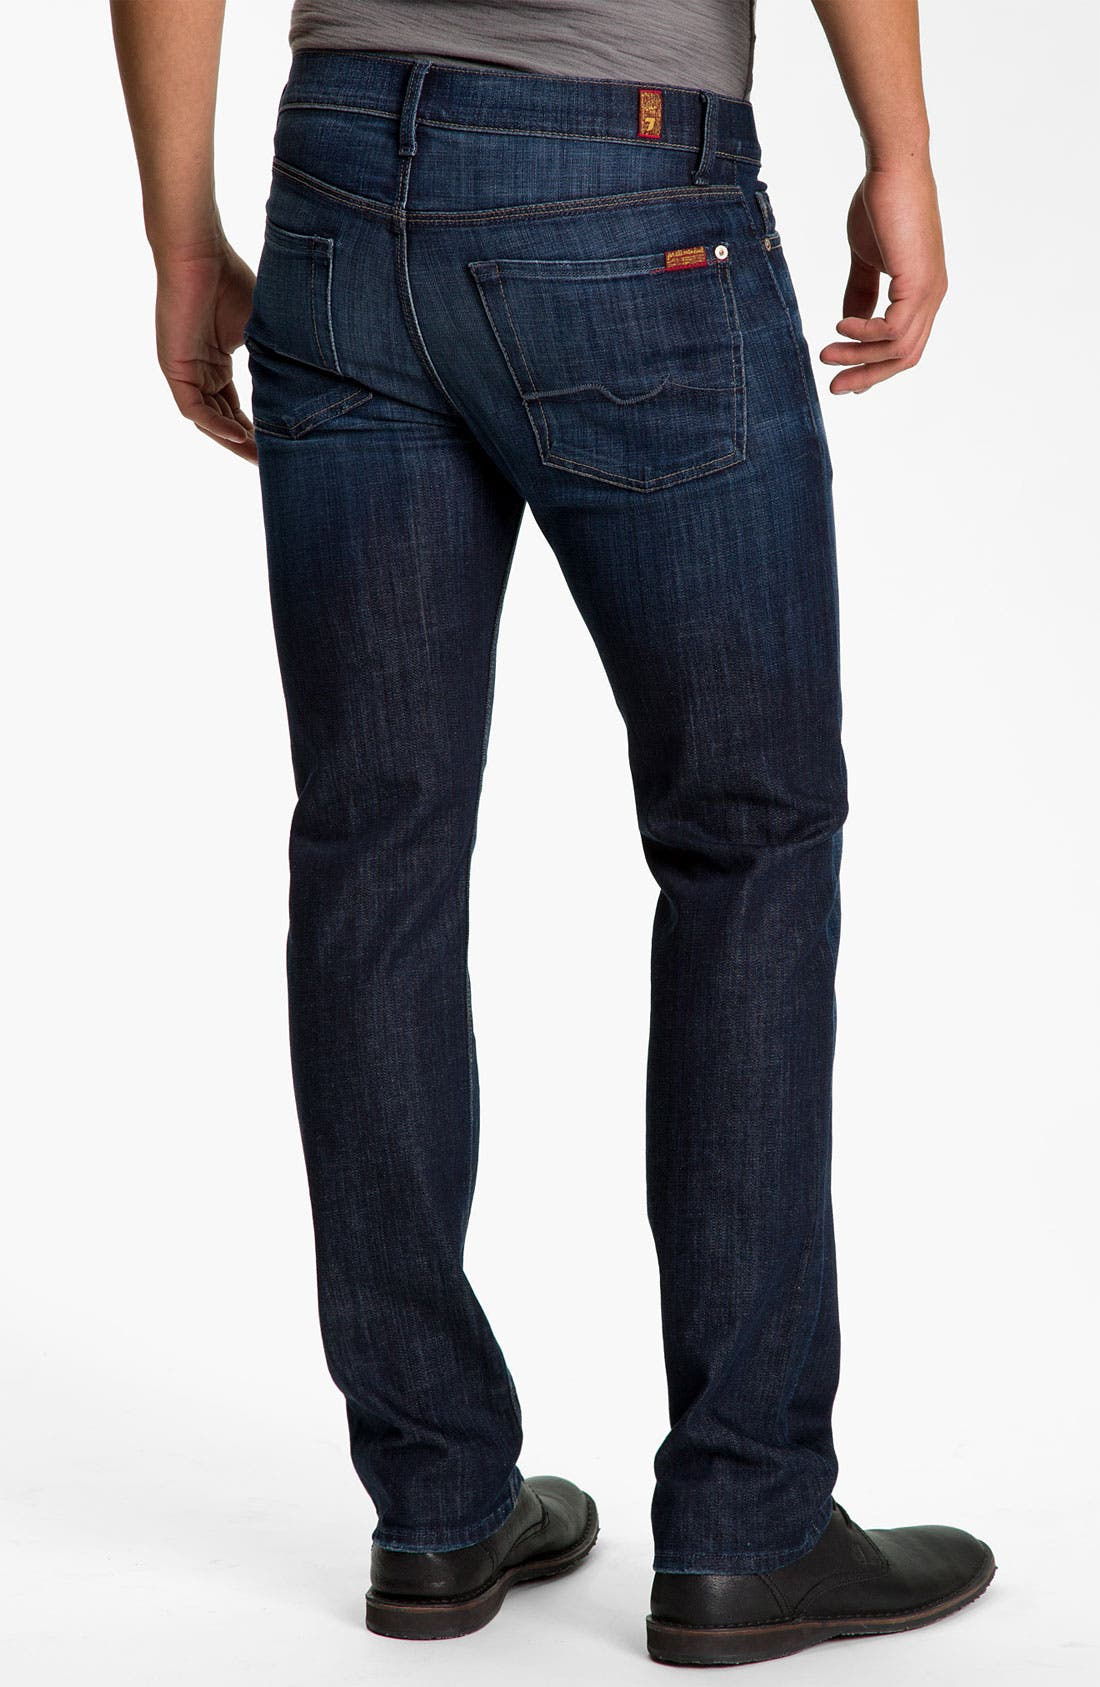 Slimmy Slim Fit Jeans,                             Alternate thumbnail 2, color,                             Los Angeles Dark